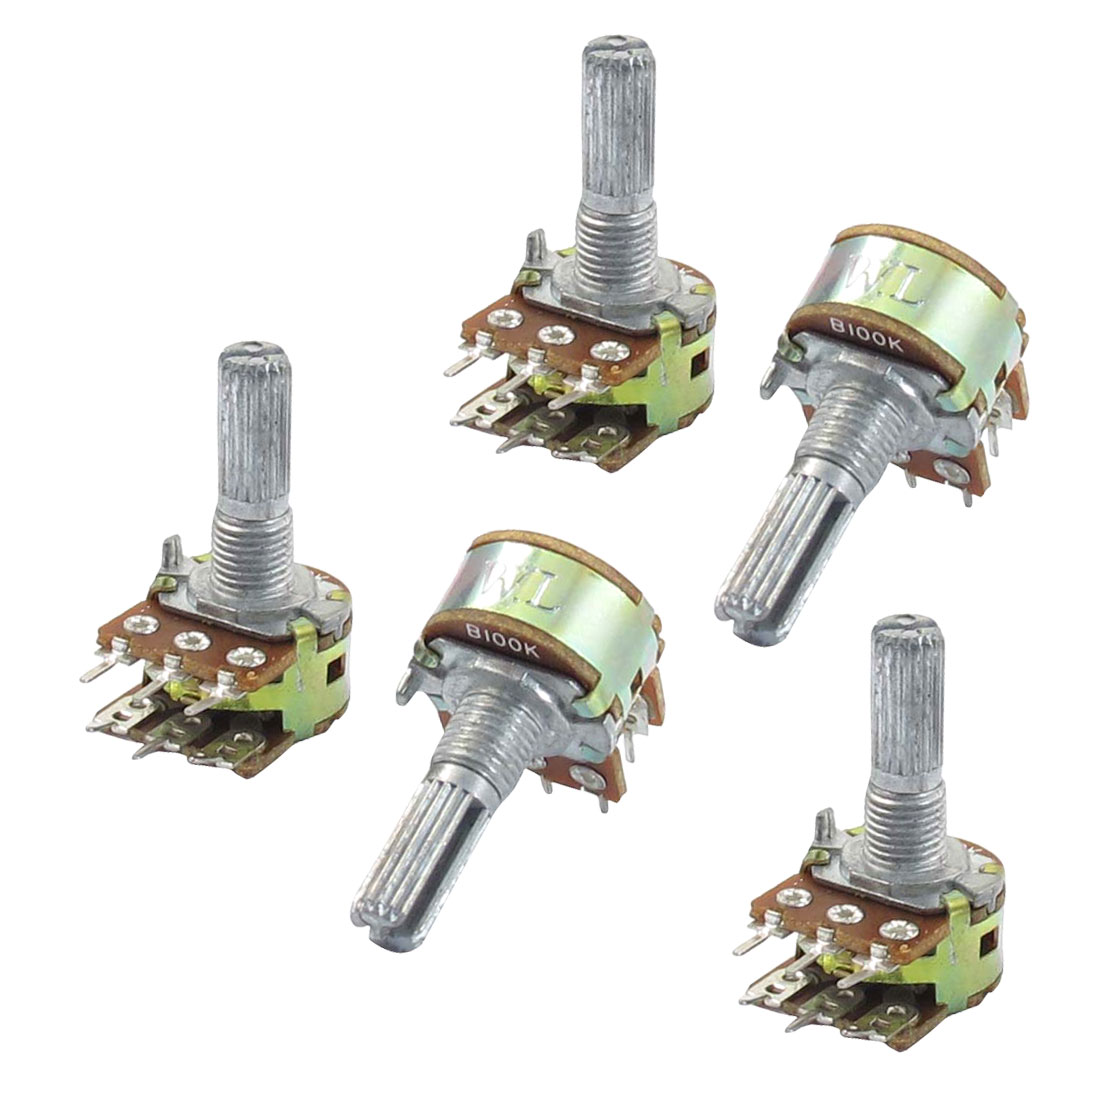 5 Pcs B100K 100K ohm 6 Pins Split Shaft Rotary Linear Dual Taper Potentiometers